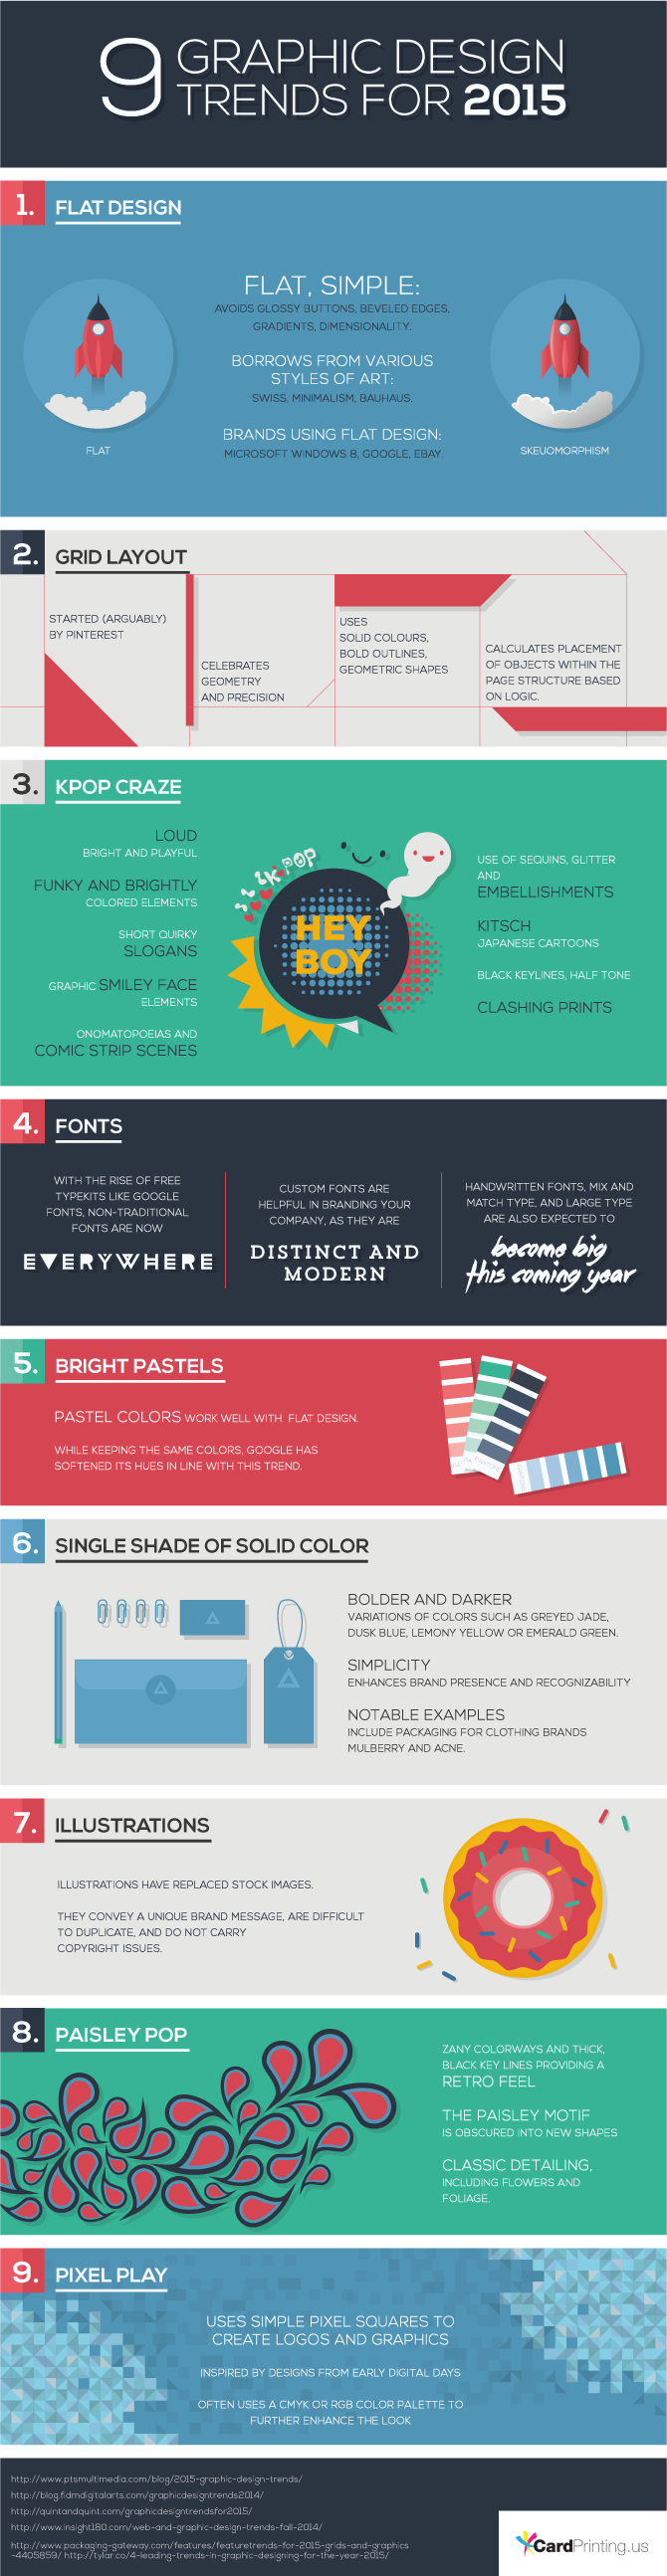 Nine Visual Design Trends for 2015 - #infographic